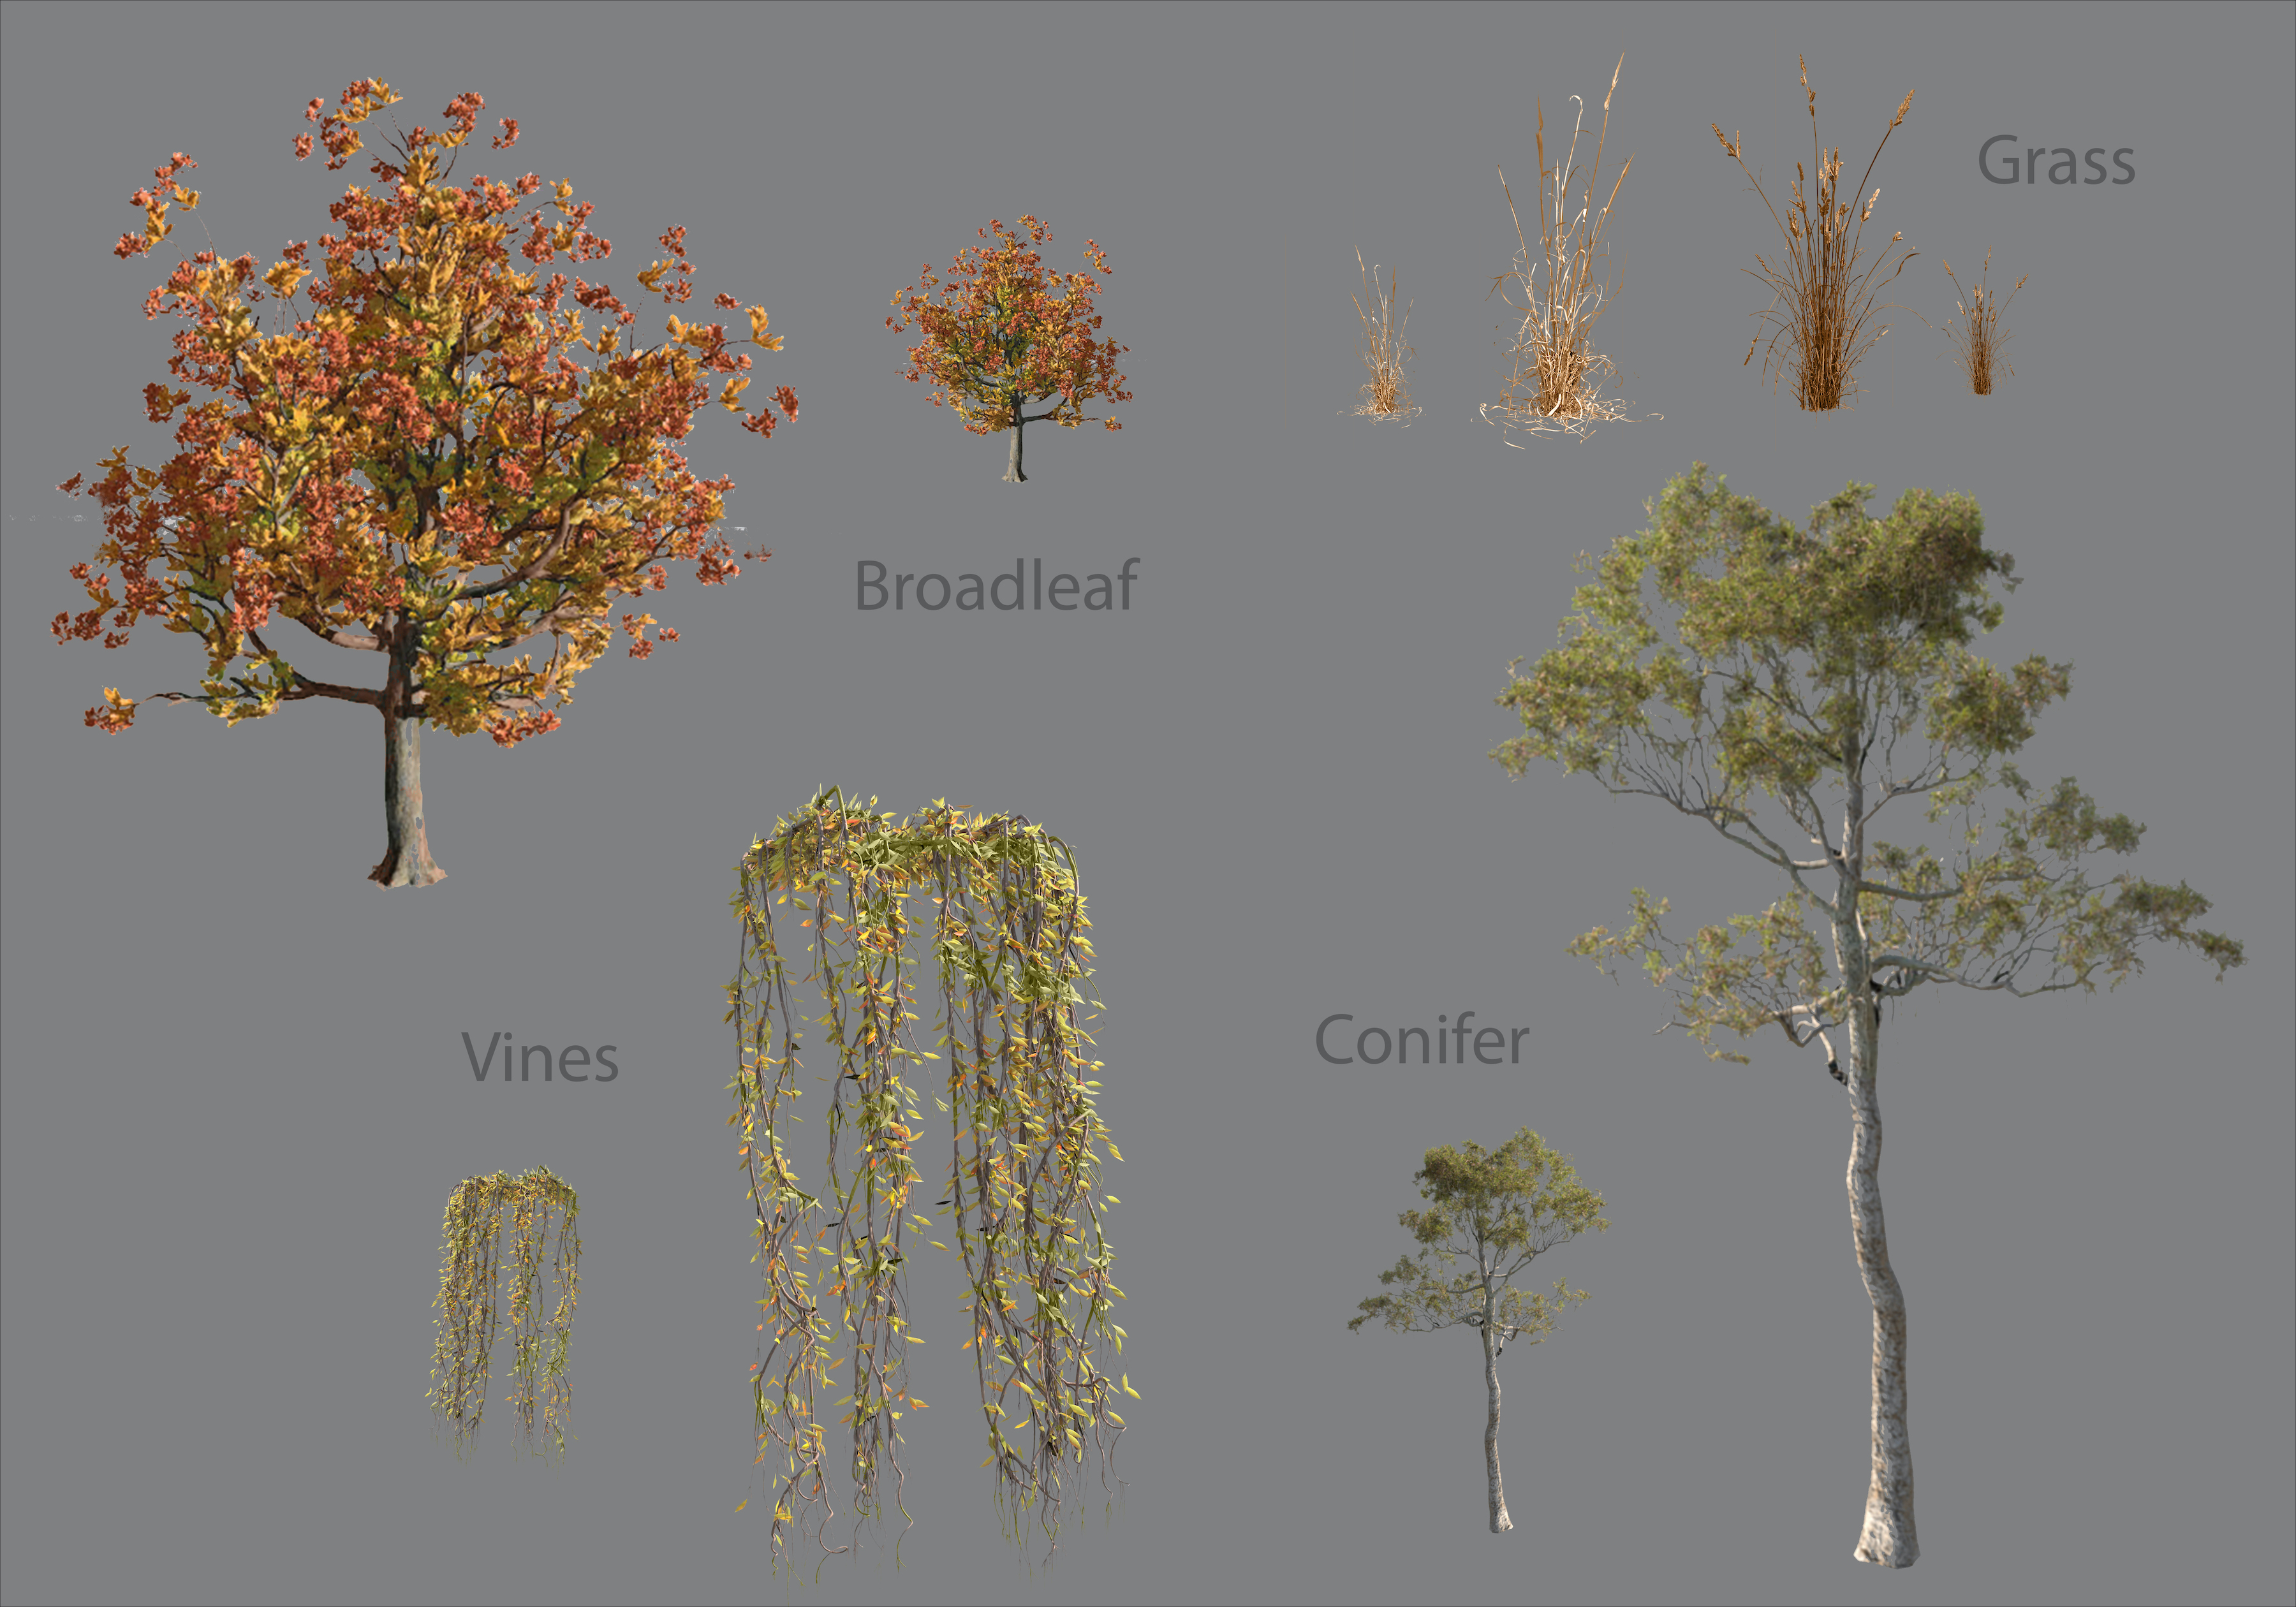 Renders of foliage types